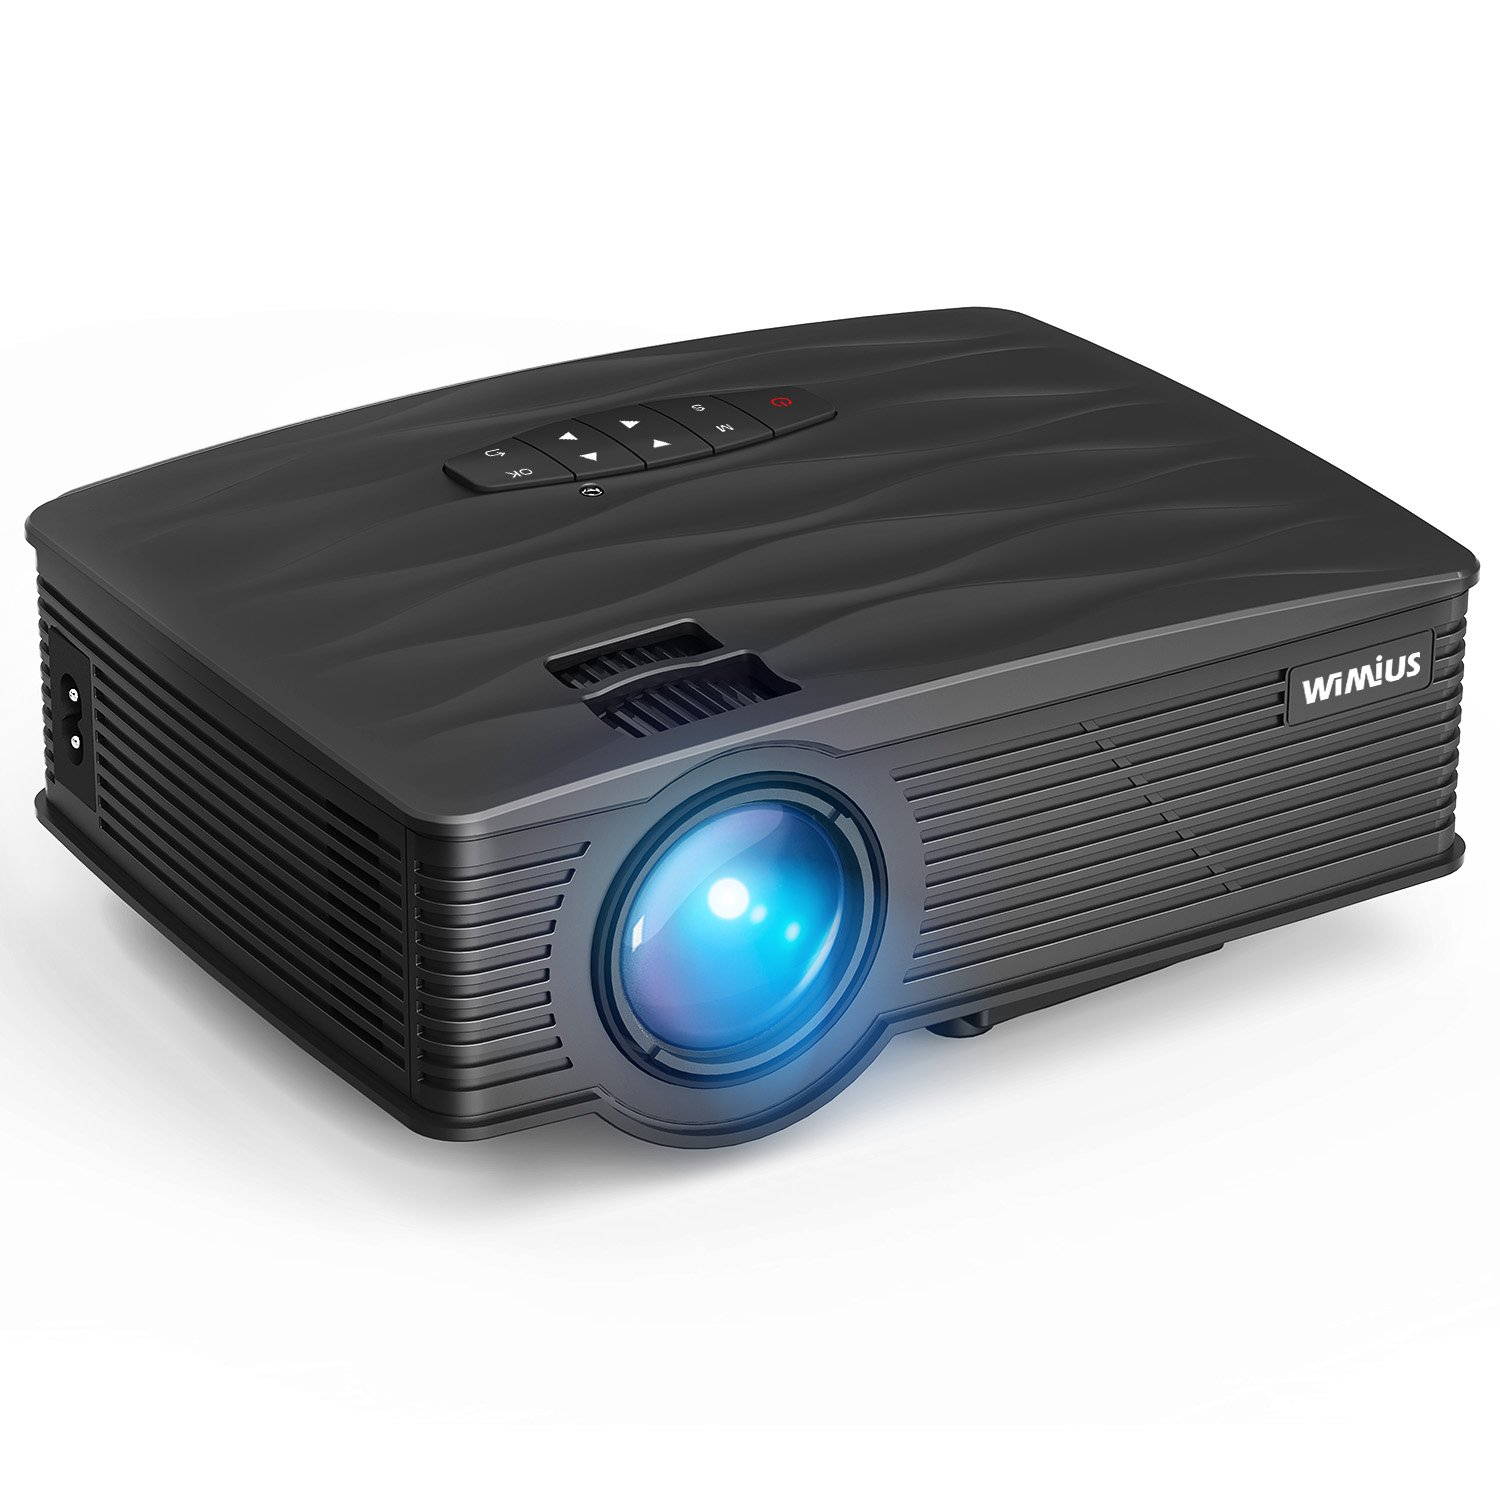 Projector, WiMiUS Upgraded 2200 Lumens Mini Projector with 170'' Display, 50,000 Hours LED Full HD Video Projector 1080P Support, Compatible with Fire TV Stick, HDMI, VGA, USB, AV, TF for Home Theater